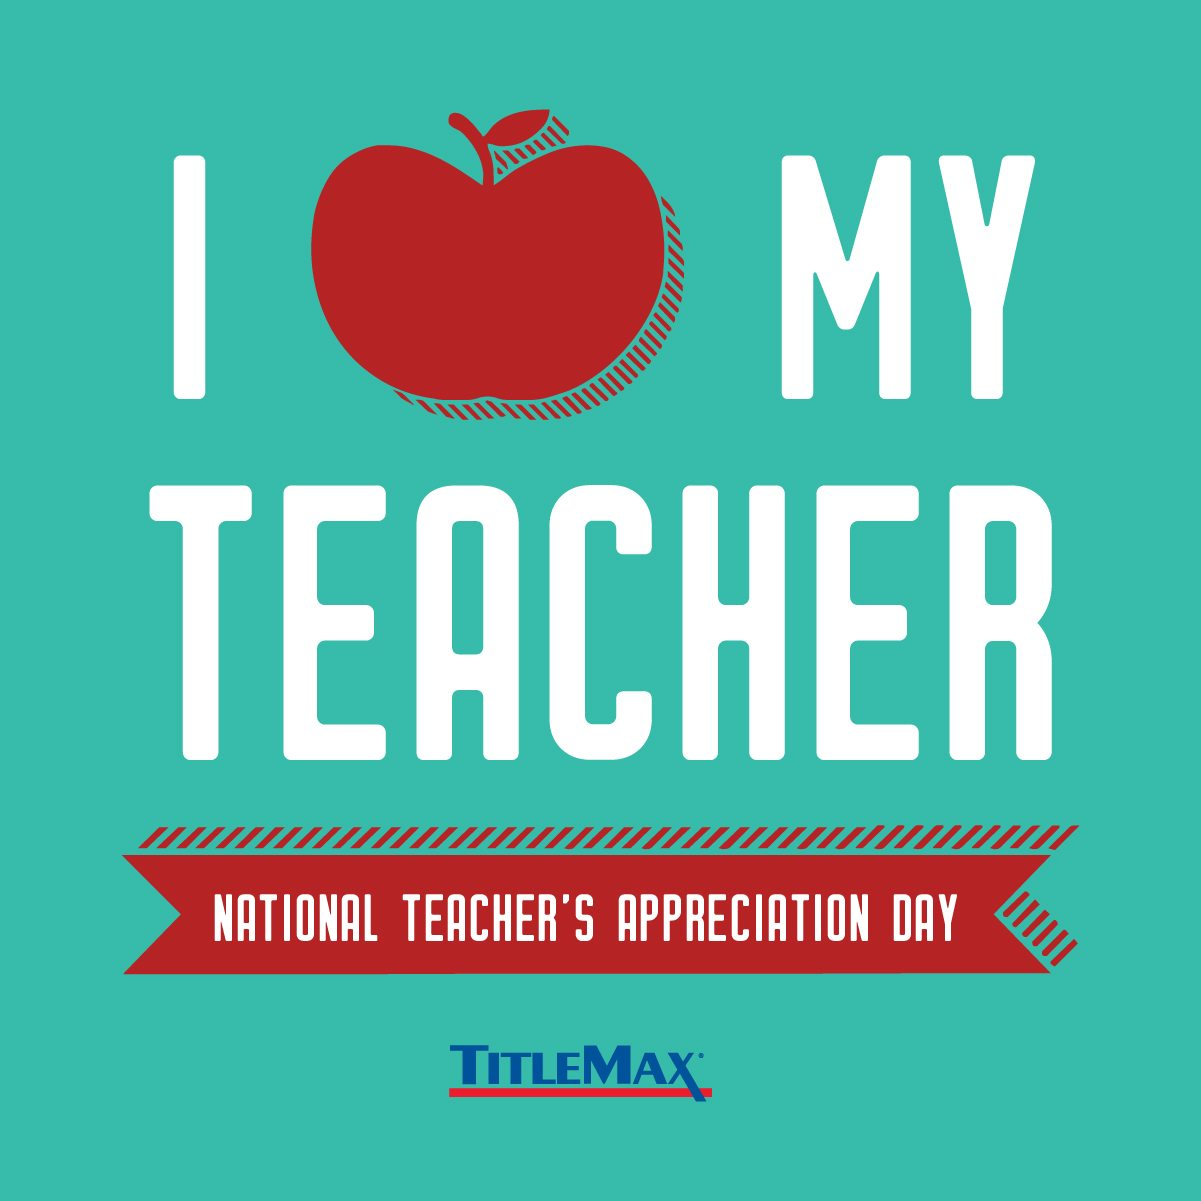 It's National Teacher's Appreciation Day!